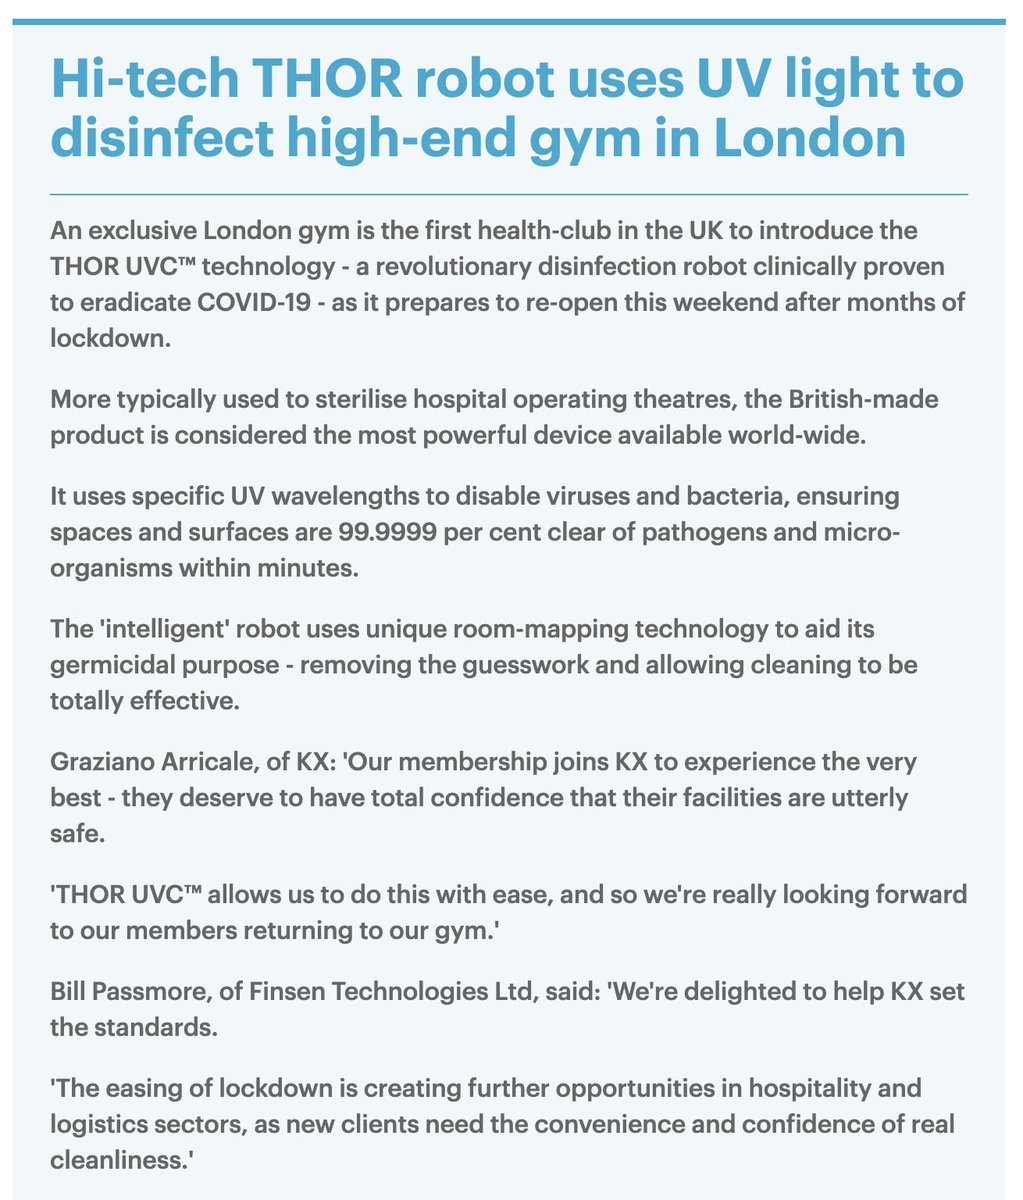 Introducing THOR UVC® to gyms, hotels, restaurants and much more ensures that your environment receives a thorough and standardised clean proven to eliminate COVID-19. (Click to see full photo) #disinfection #uvcrobot #COVID #uvc #infectioncontrol